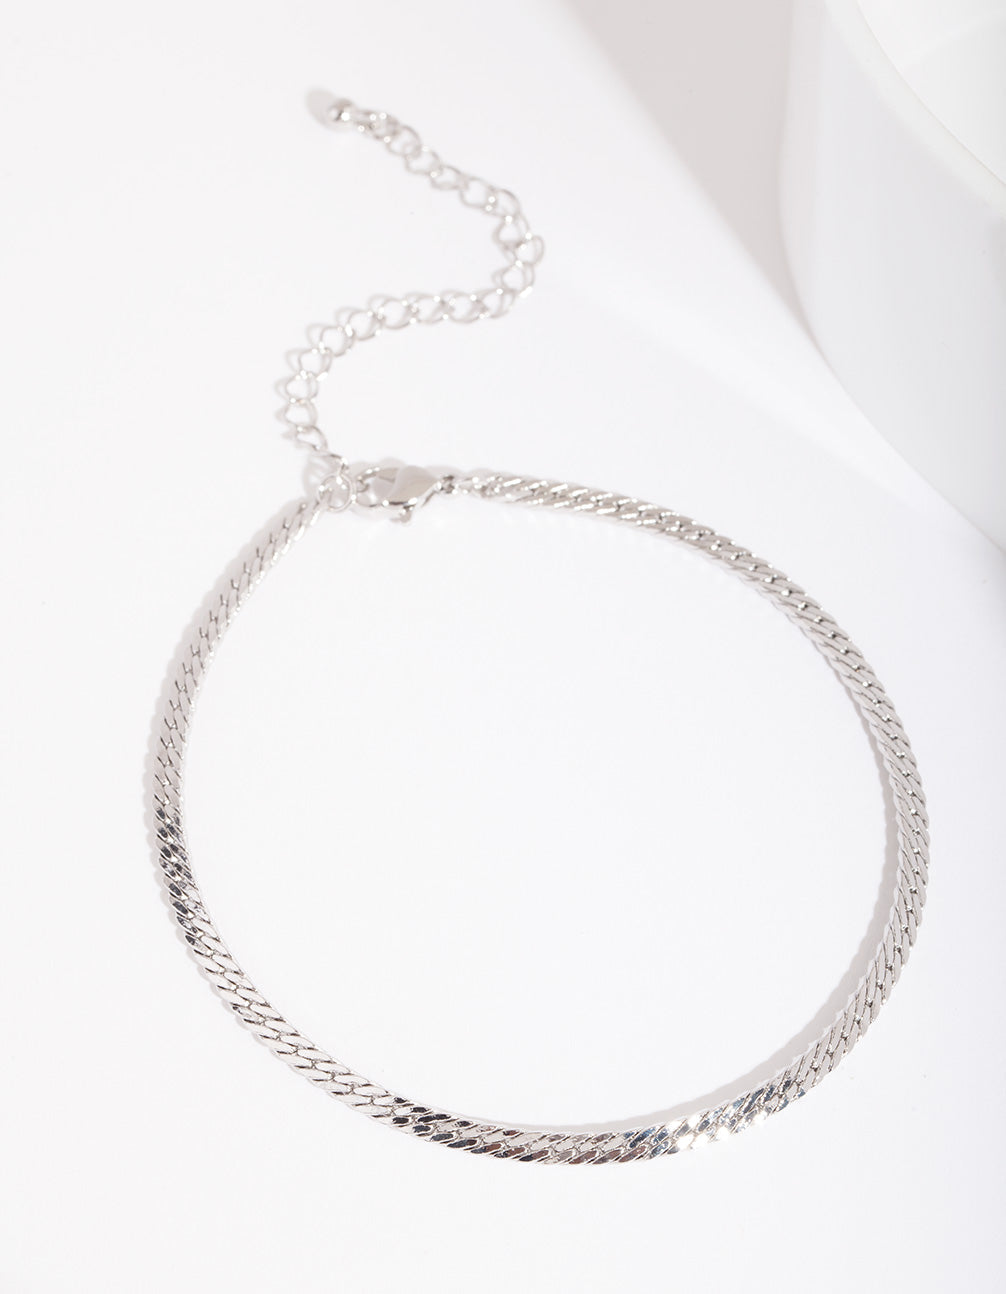 Rhodium 3mm Herringbone Chain Anklet